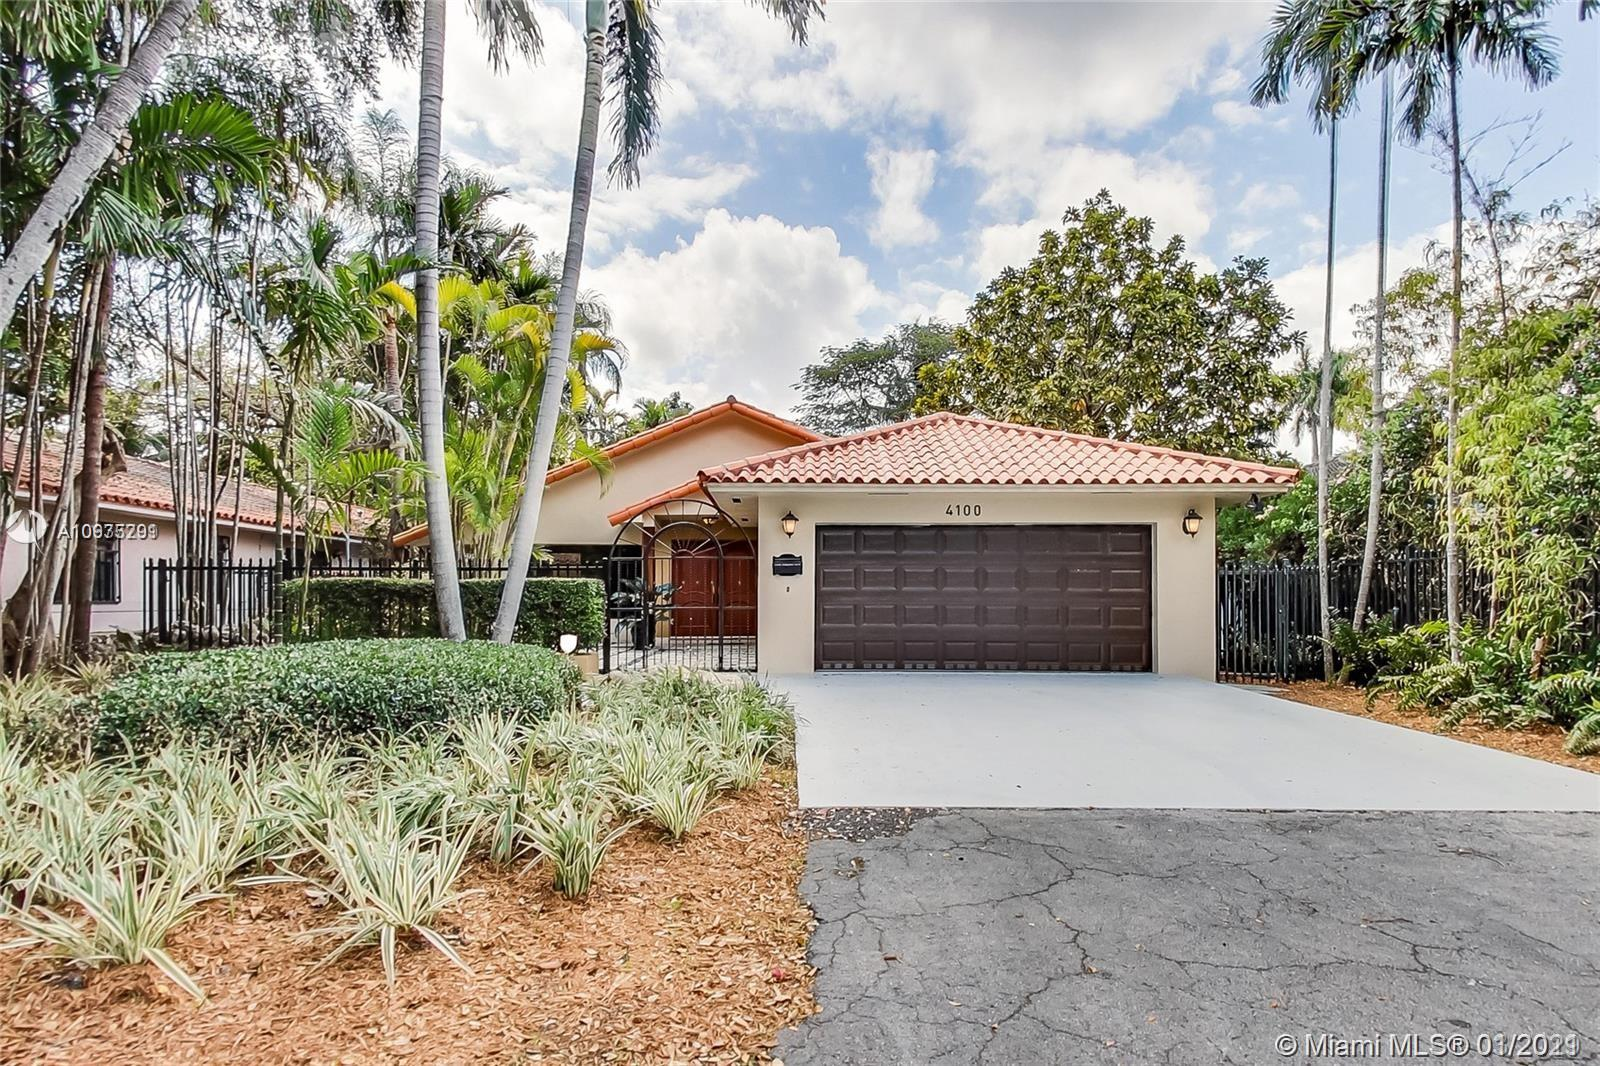 Details for 4100 14th St, Miami, FL 33134